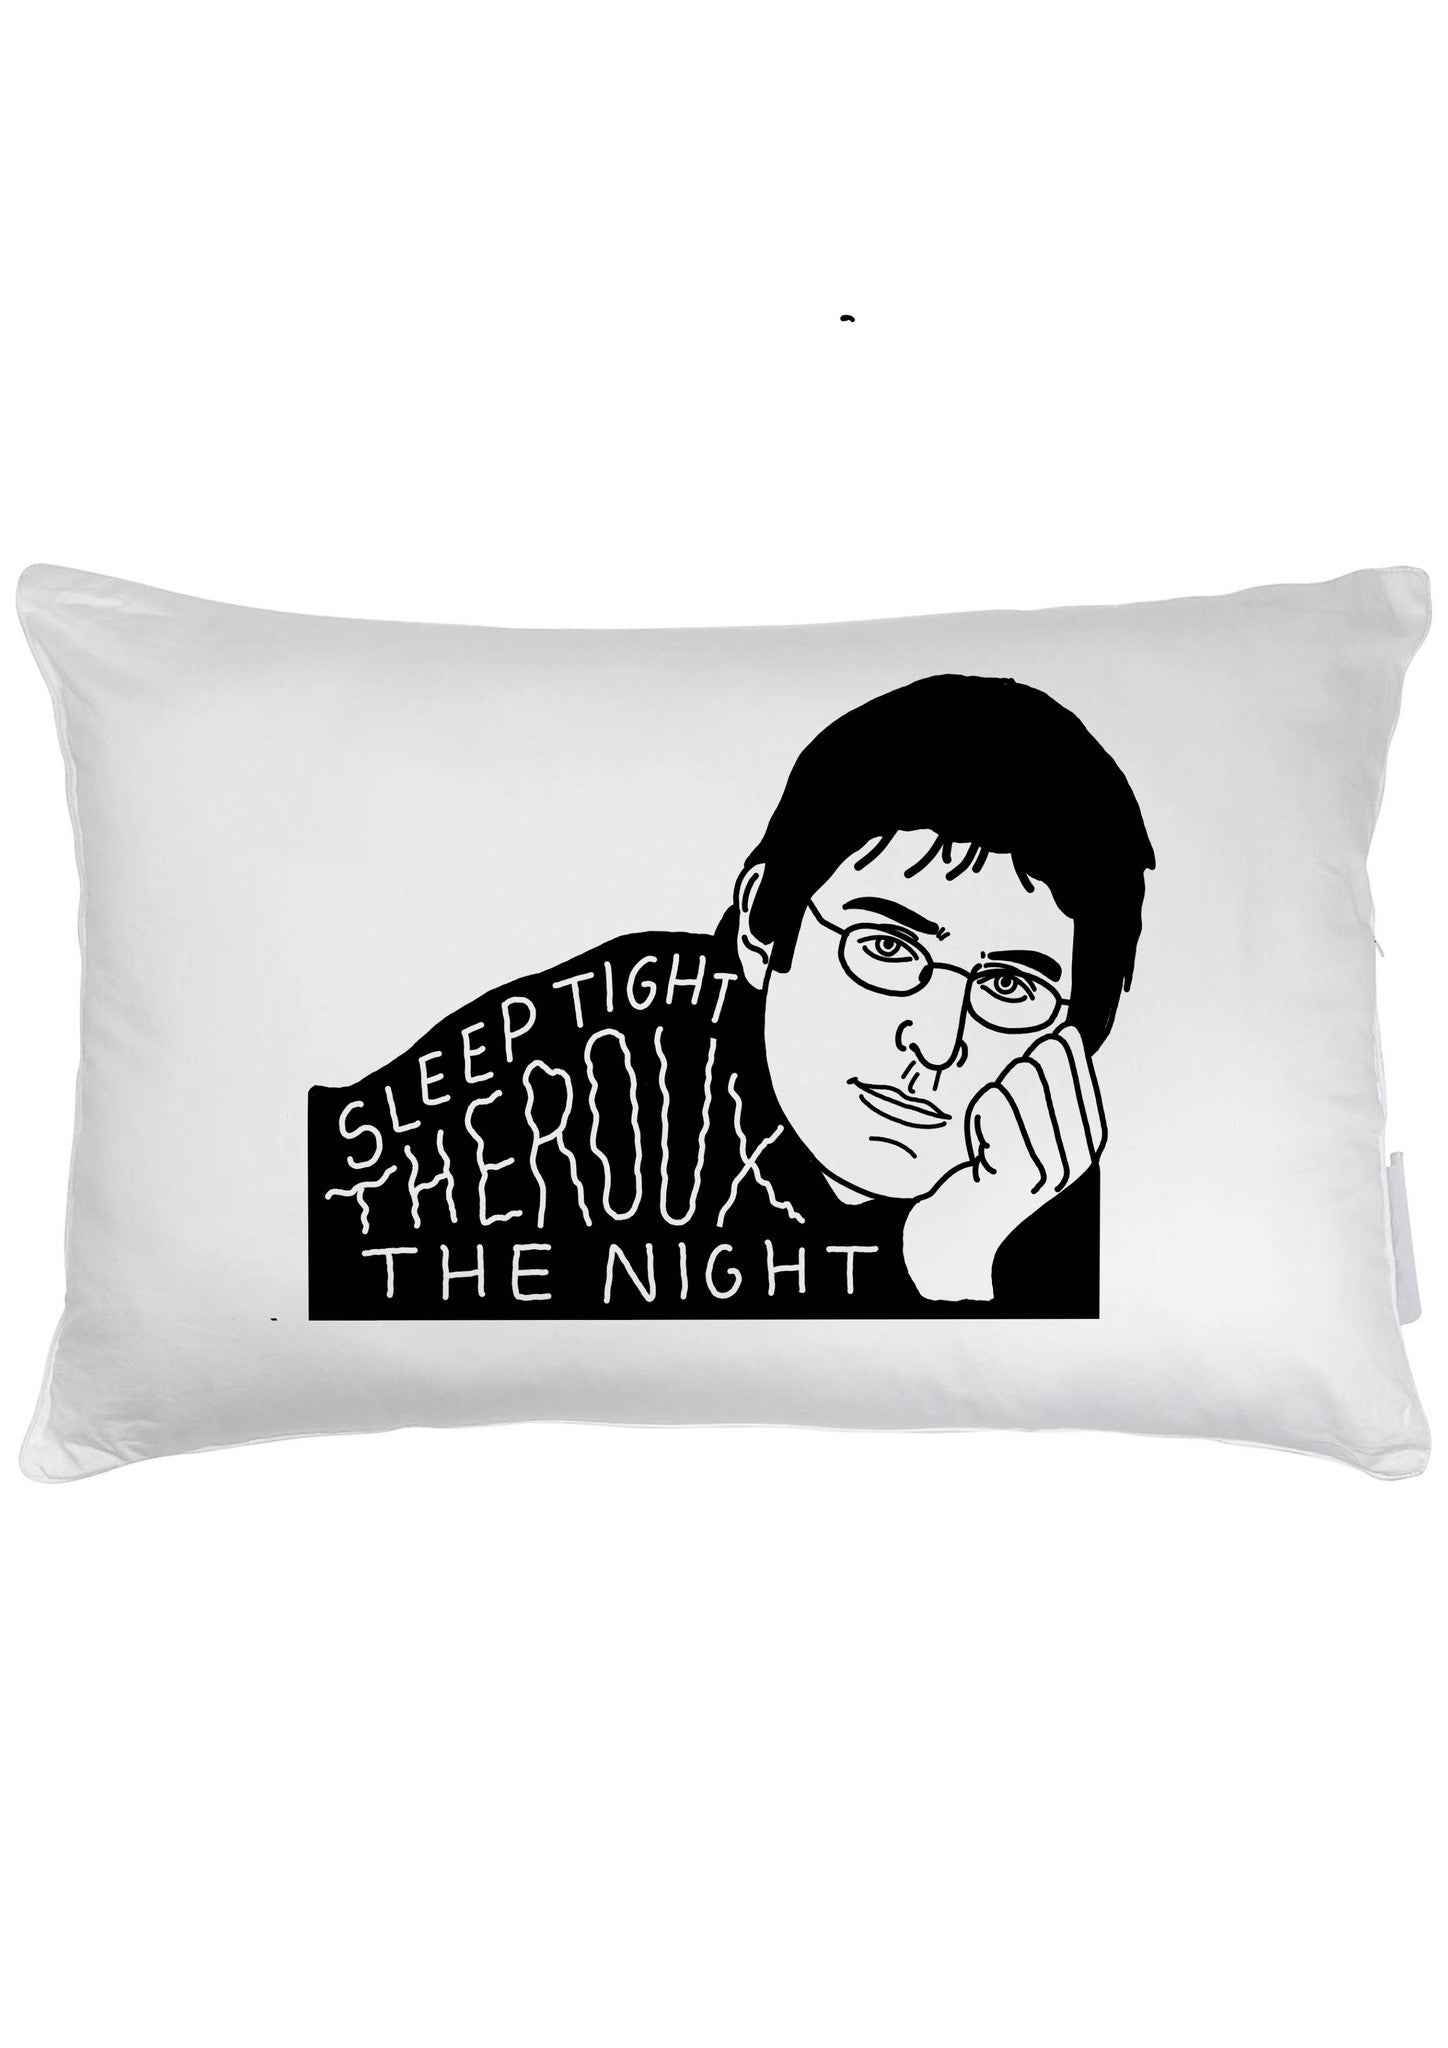 Louis Theroux - Sleep Tight Theroux The Night - Pillow Case - Jiggle Apparel